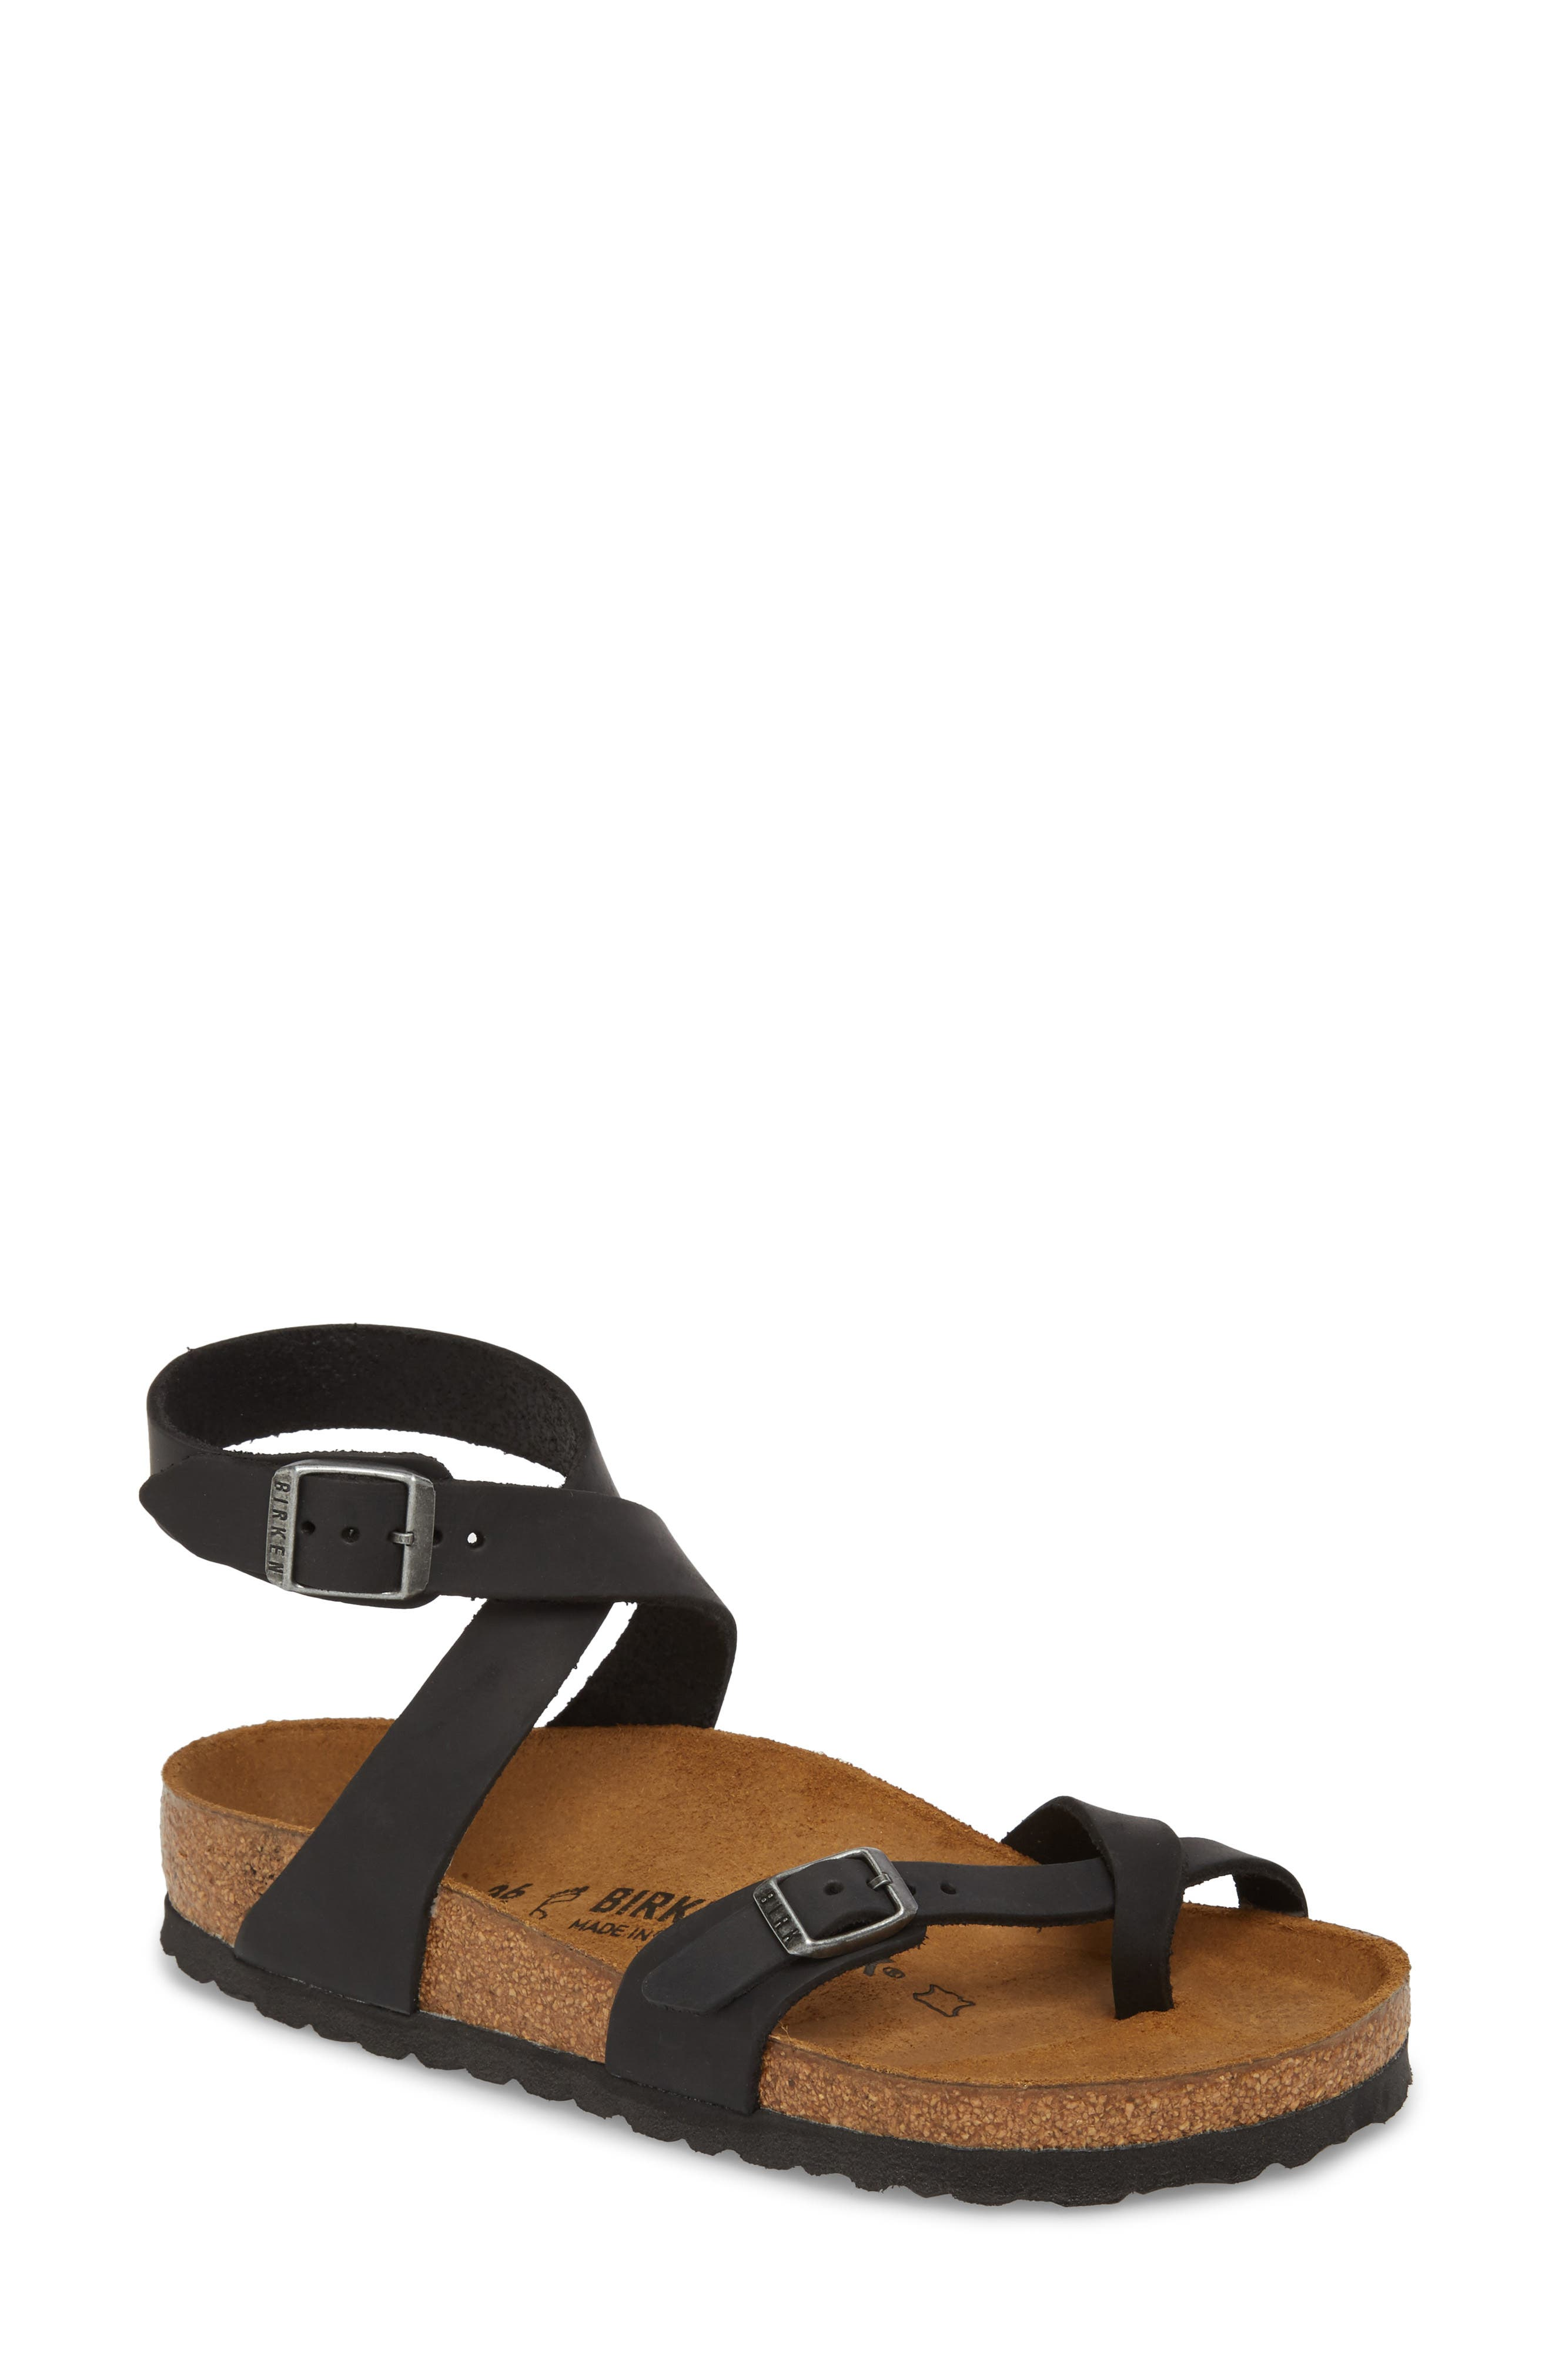 'Yara' Sandal,                             Main thumbnail 1, color,                             BLACK OILED LEATHER